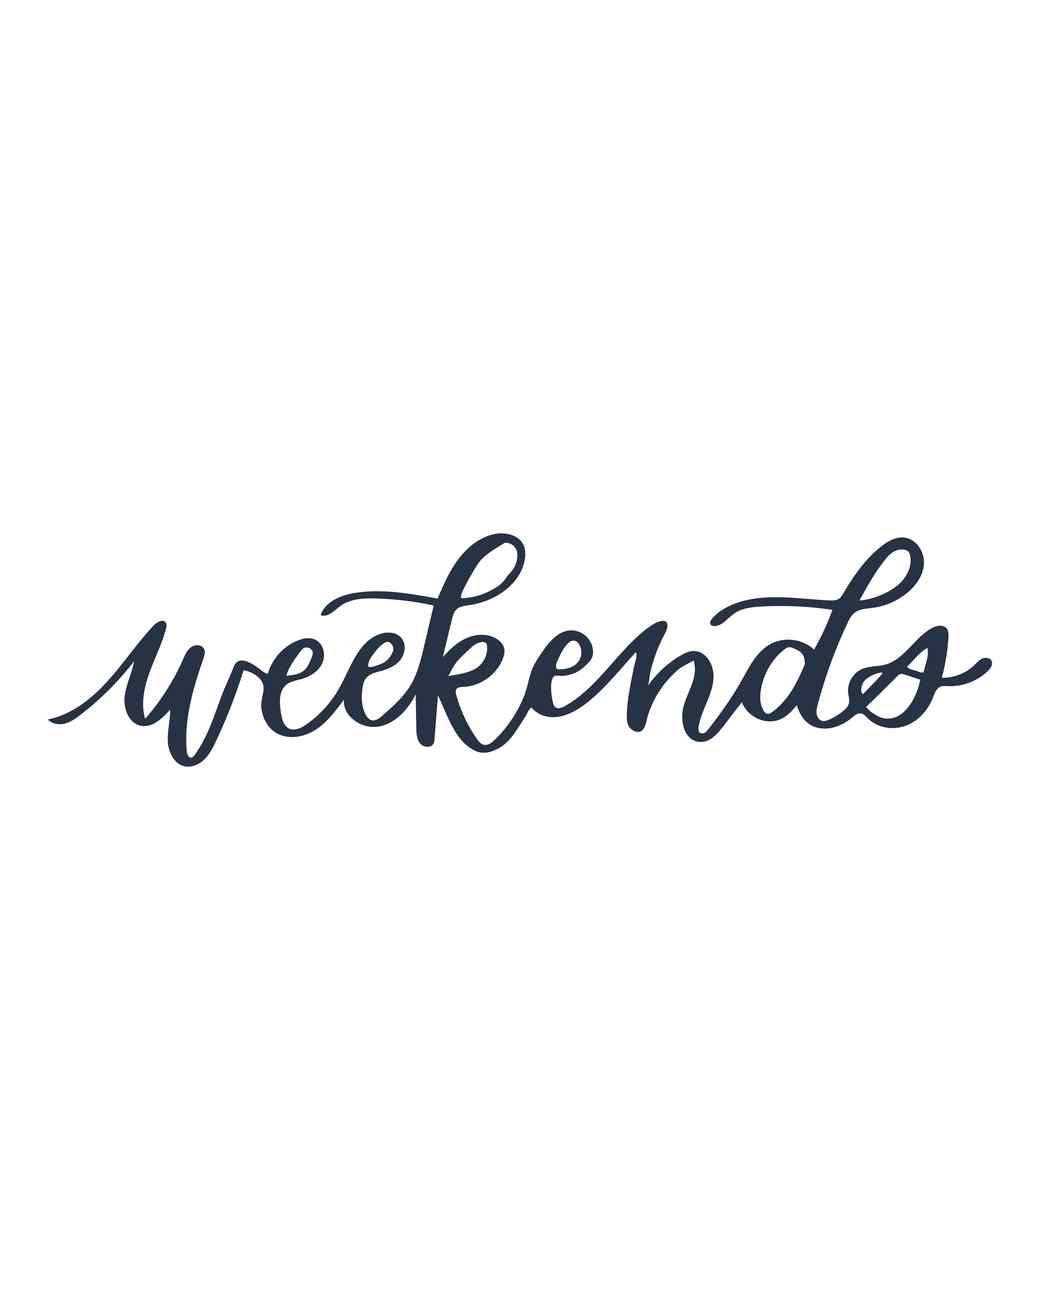 """weekends"" calligraphy"